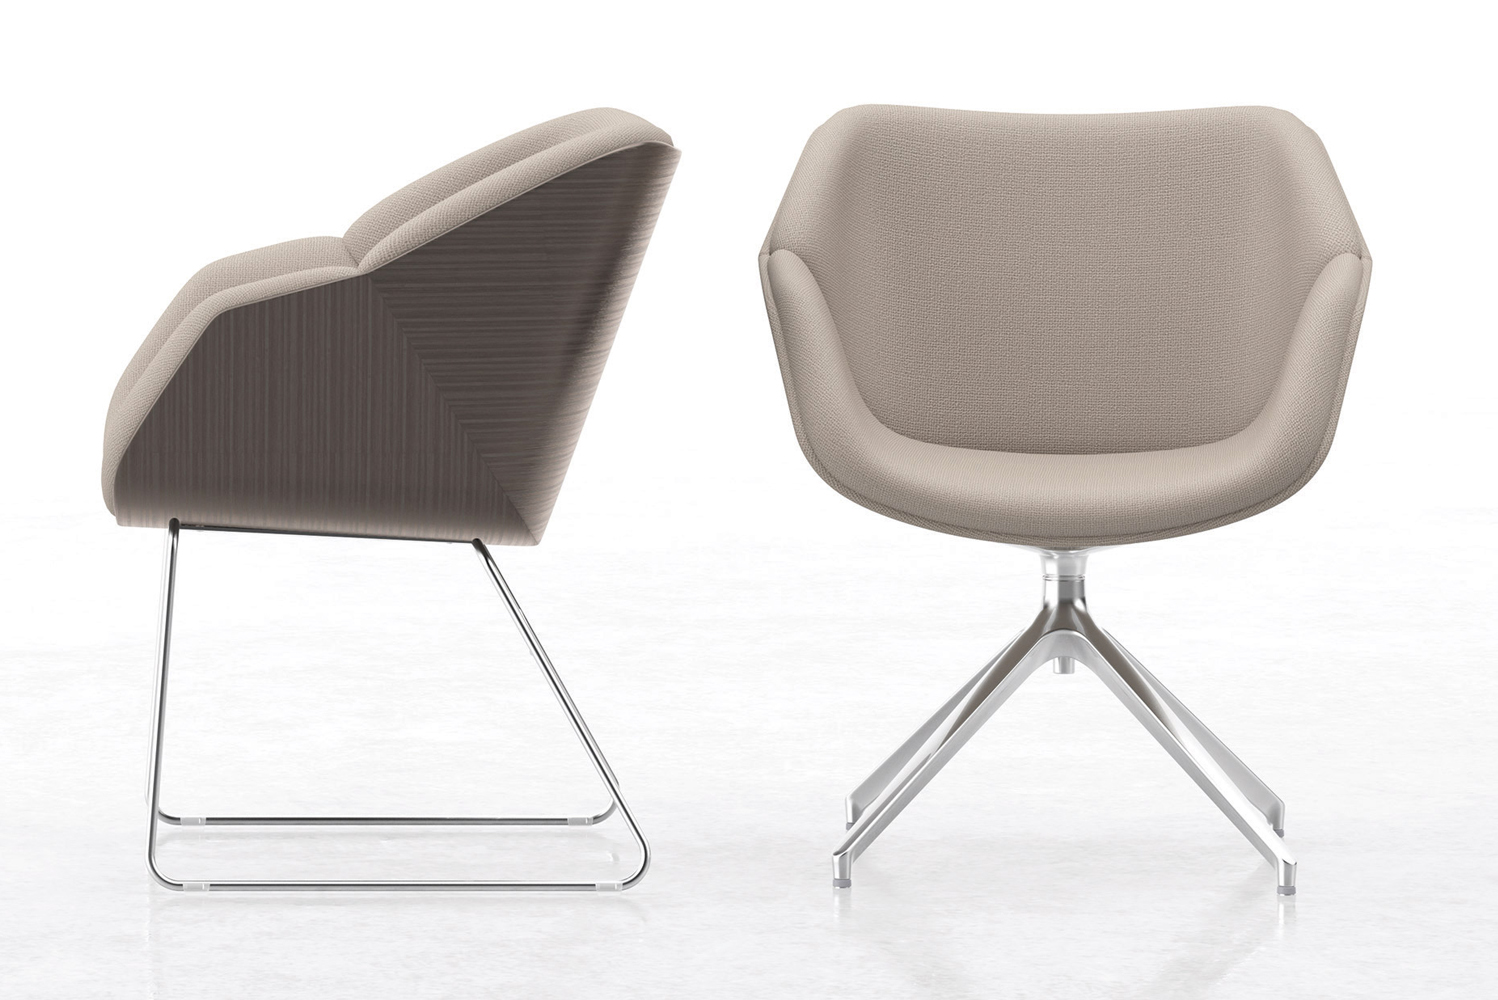 Delgado is available fully upholstered or with a bent plywood back.